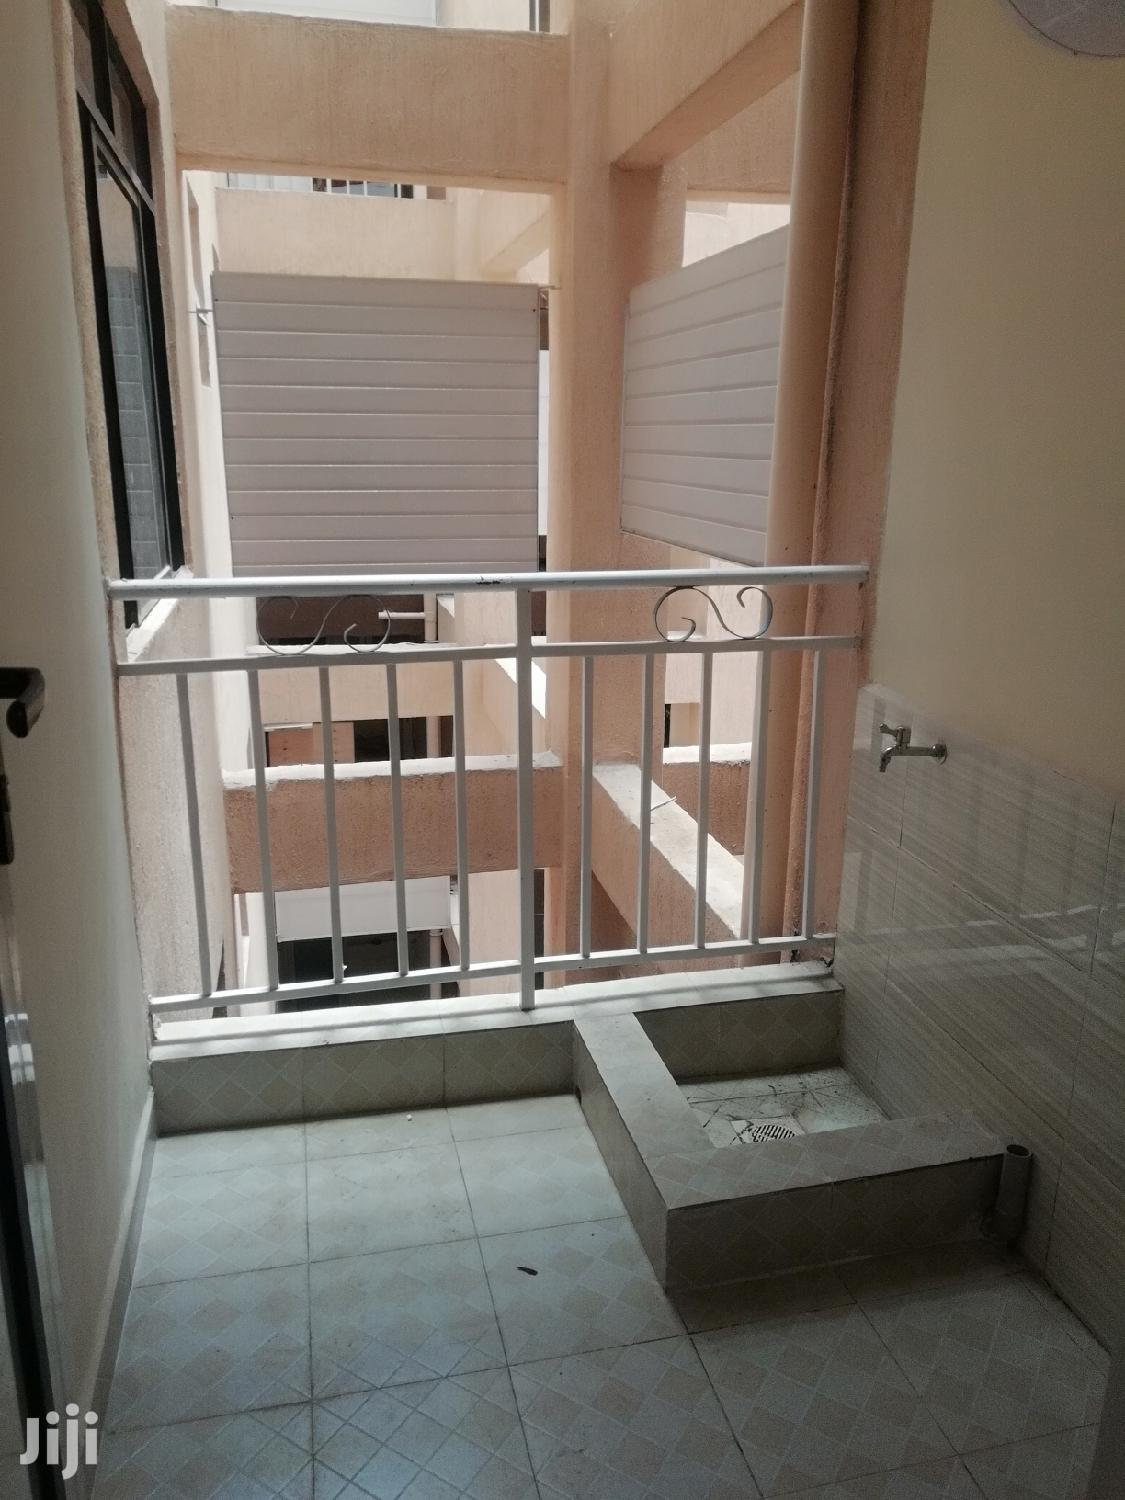 Property World;3brs Apartment With Lift,Gym And Very Secure